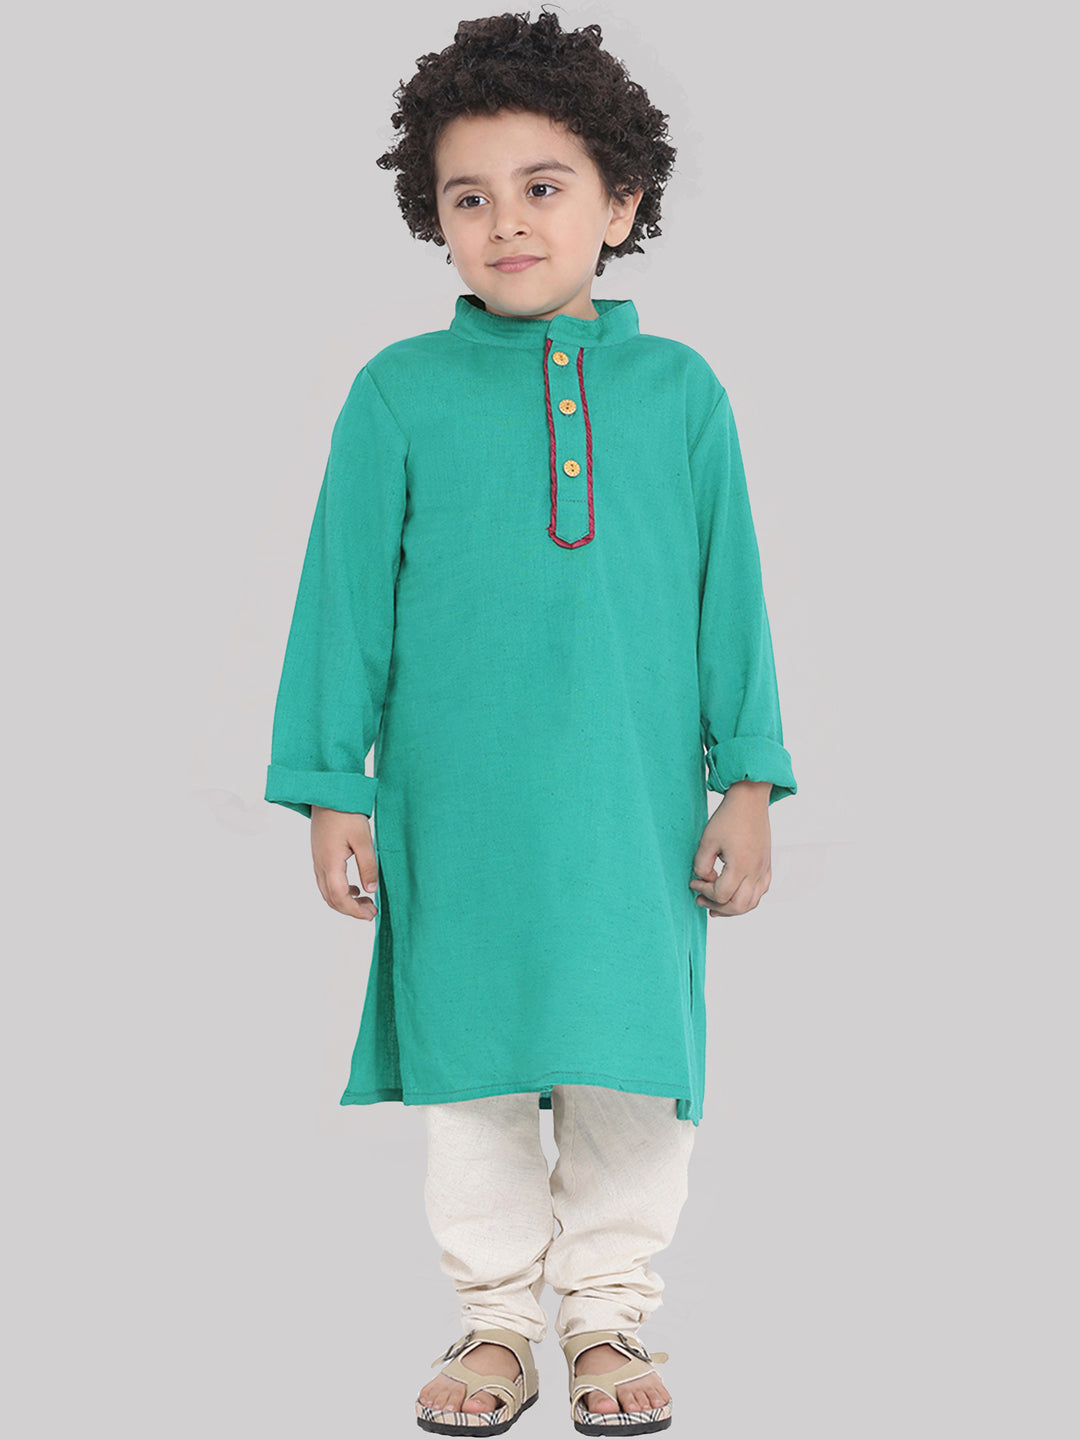 Karan Kurta Pajam For Boys